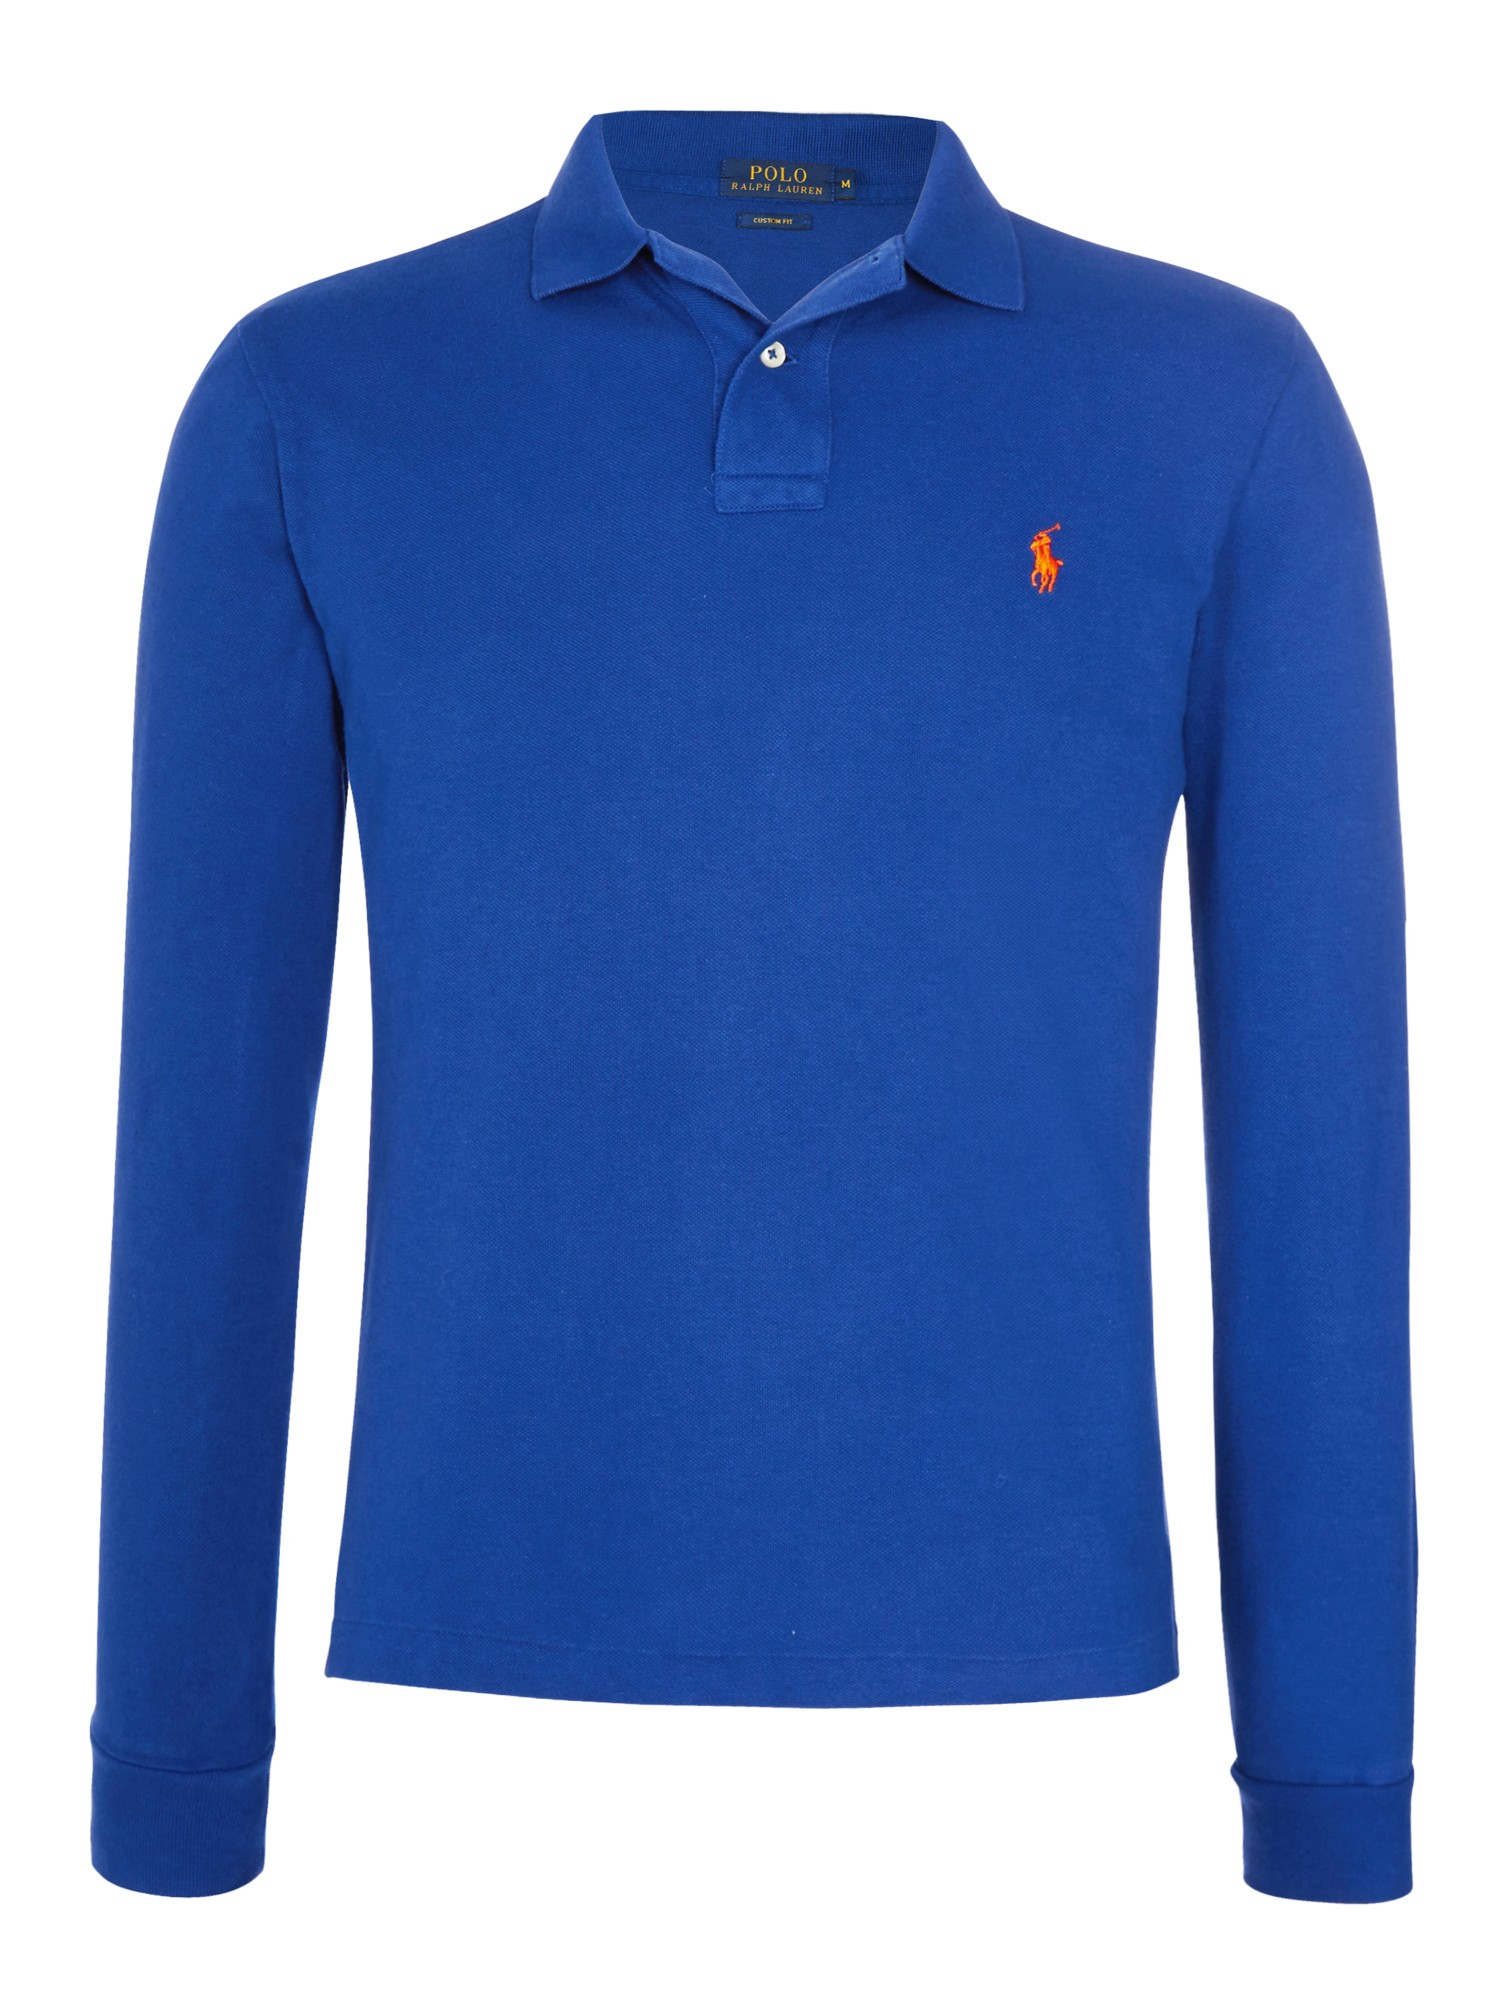 Polo Ralph Lauren Custom Fit Long Sleeve Polo Shirt In